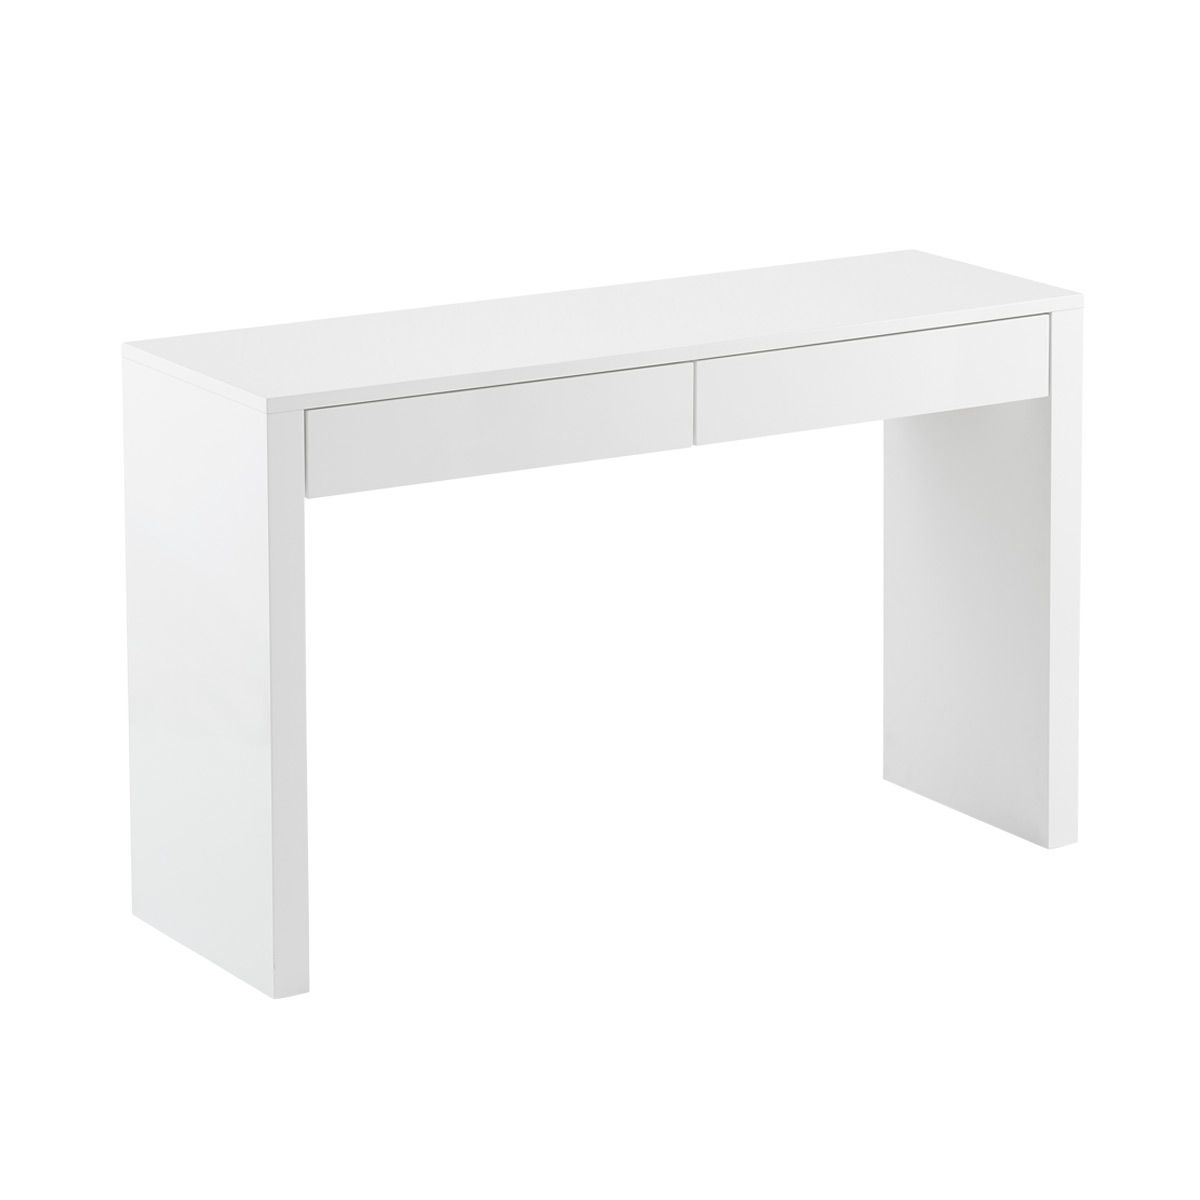 2-Drawer High Gloss Desk White